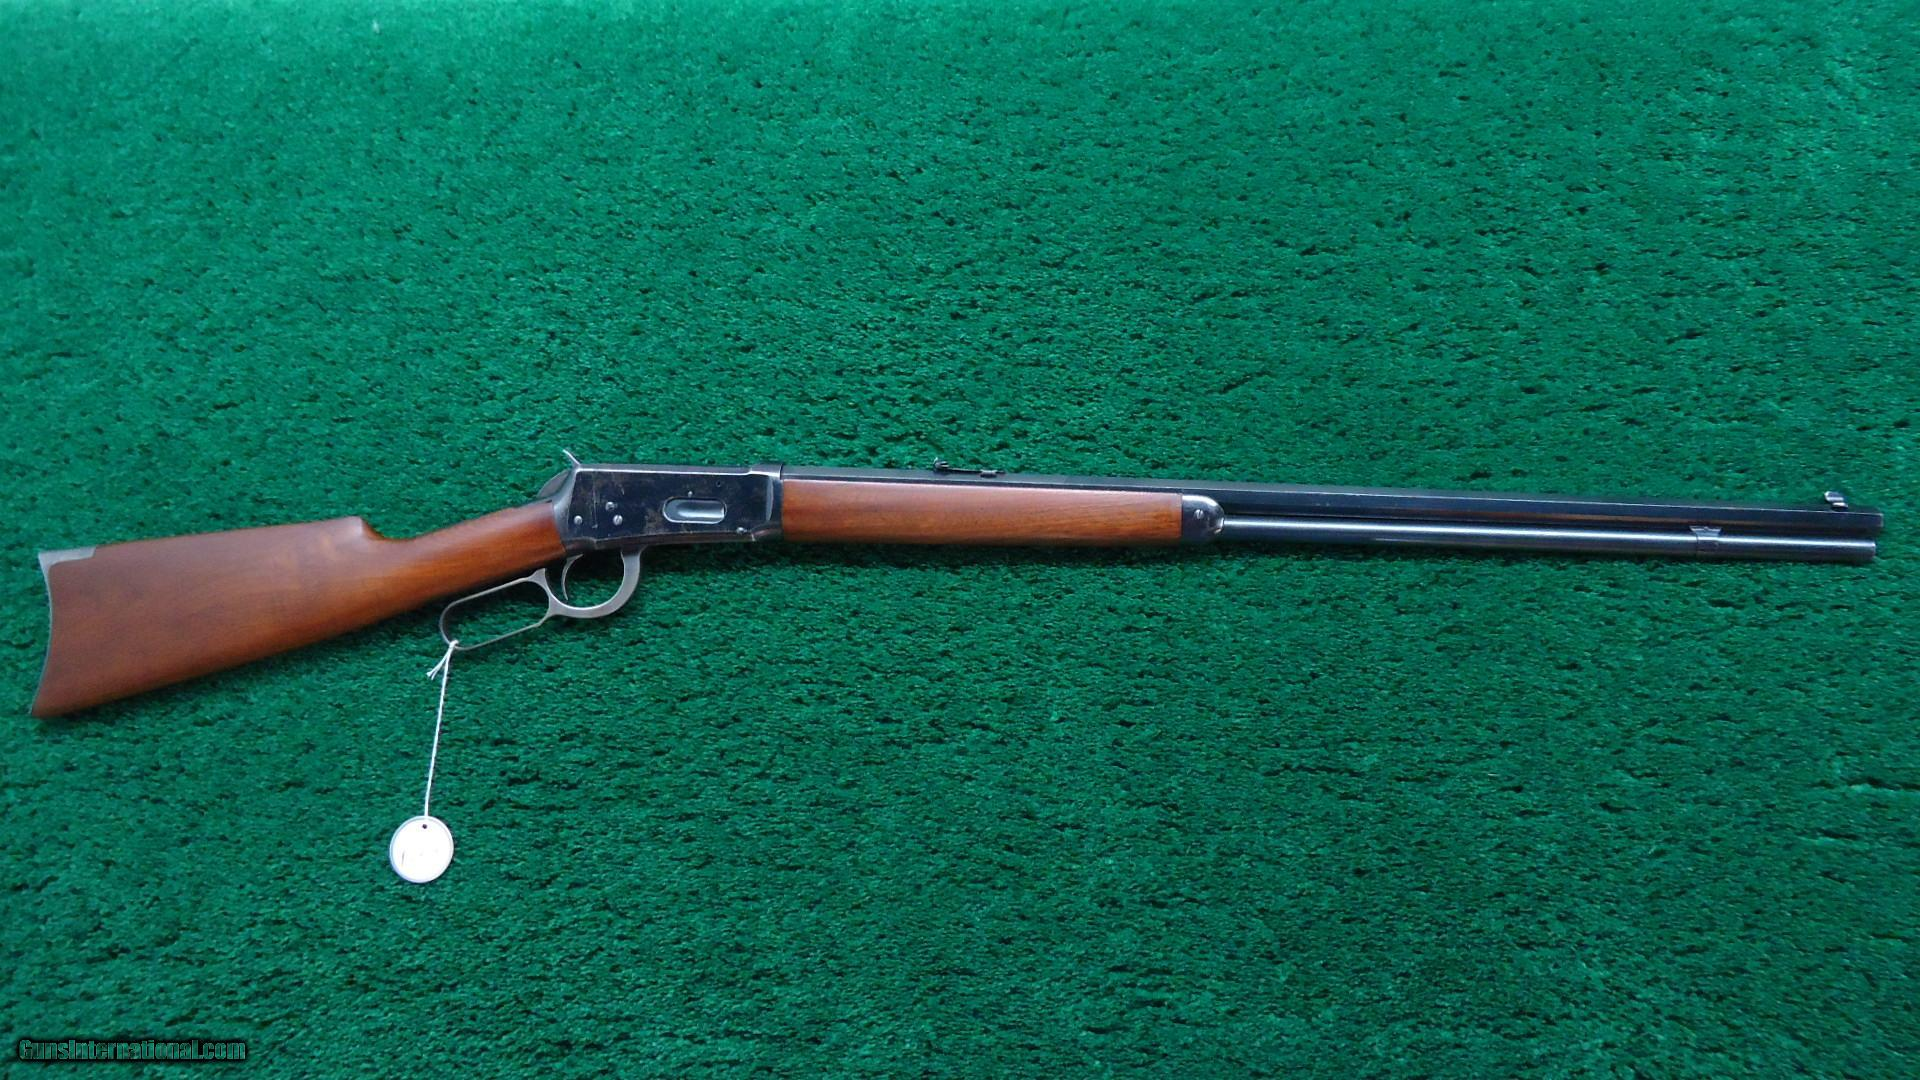 WINCHESTER 1894 RIFLE IN DESIRABLE 25-35